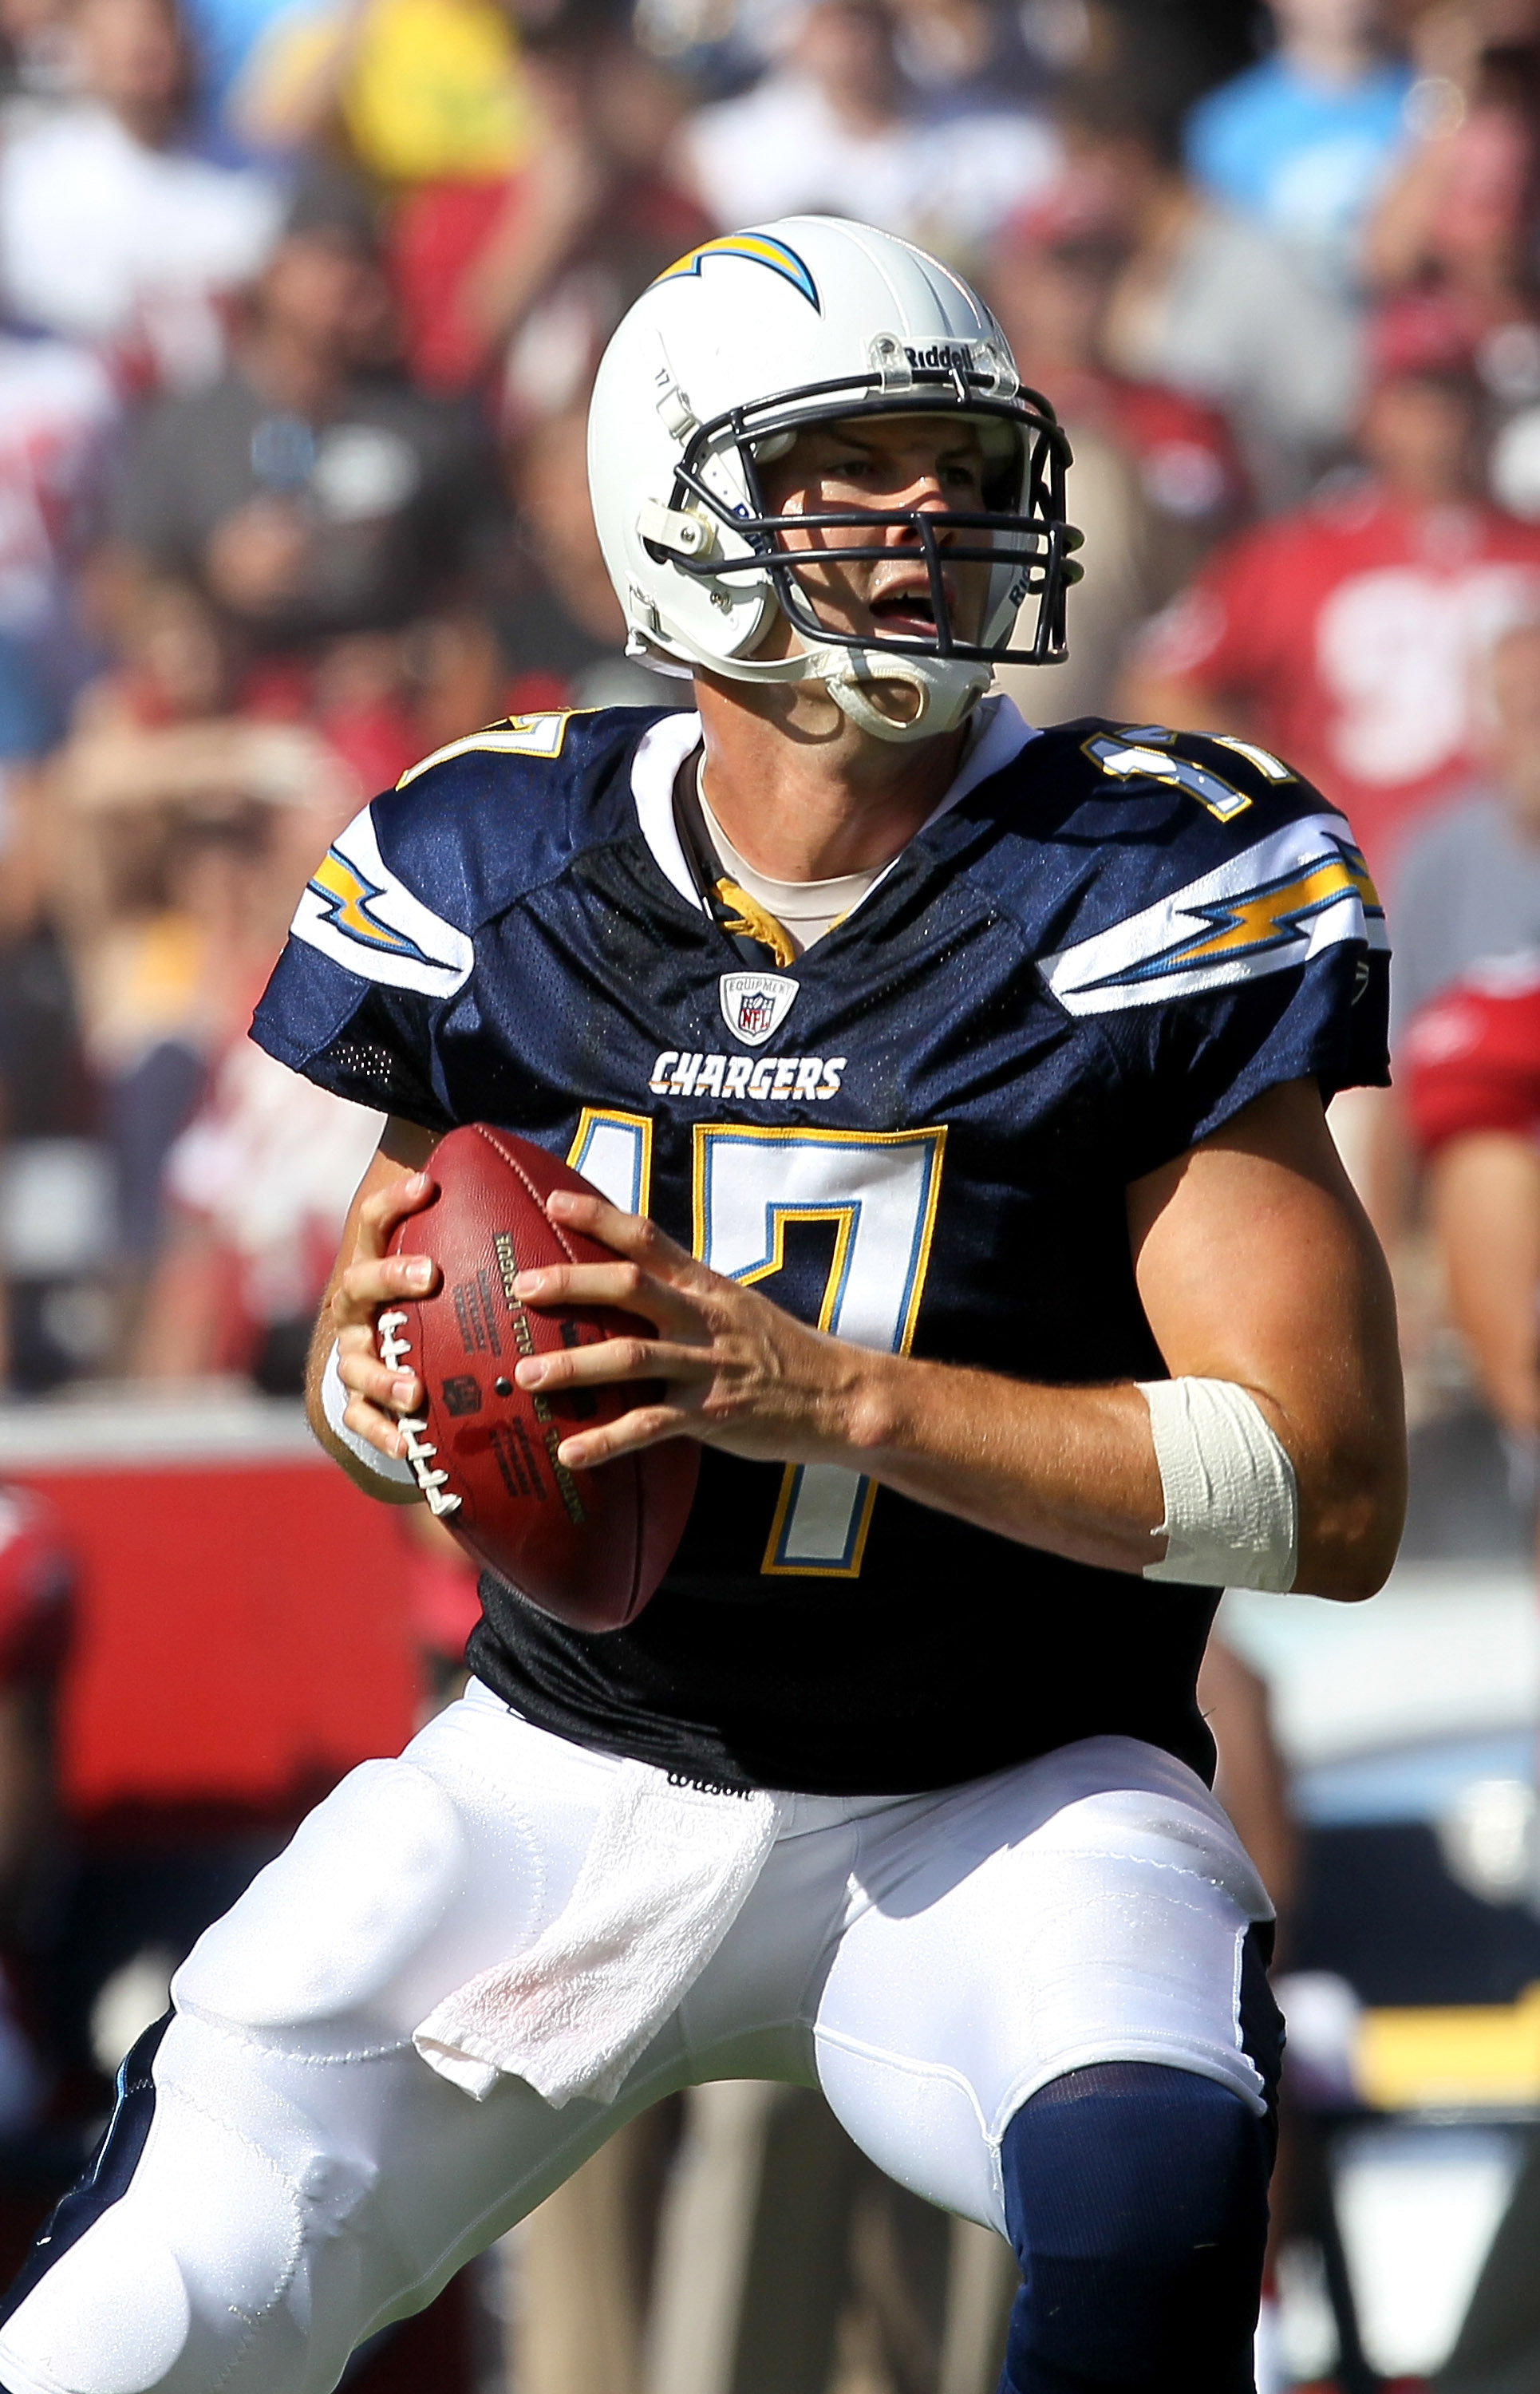 SAN DIEGO - OCTOBER 03:  Quarterback Philip Rivers of the San Diego Chargers looks to throw a pass against the Arizona Cardinals at Qualcomm Stadium on October 3, 2010 in San Diego, California.   The Chargers won 41-10.  (Photo by Stephen Dunn/Getty Image